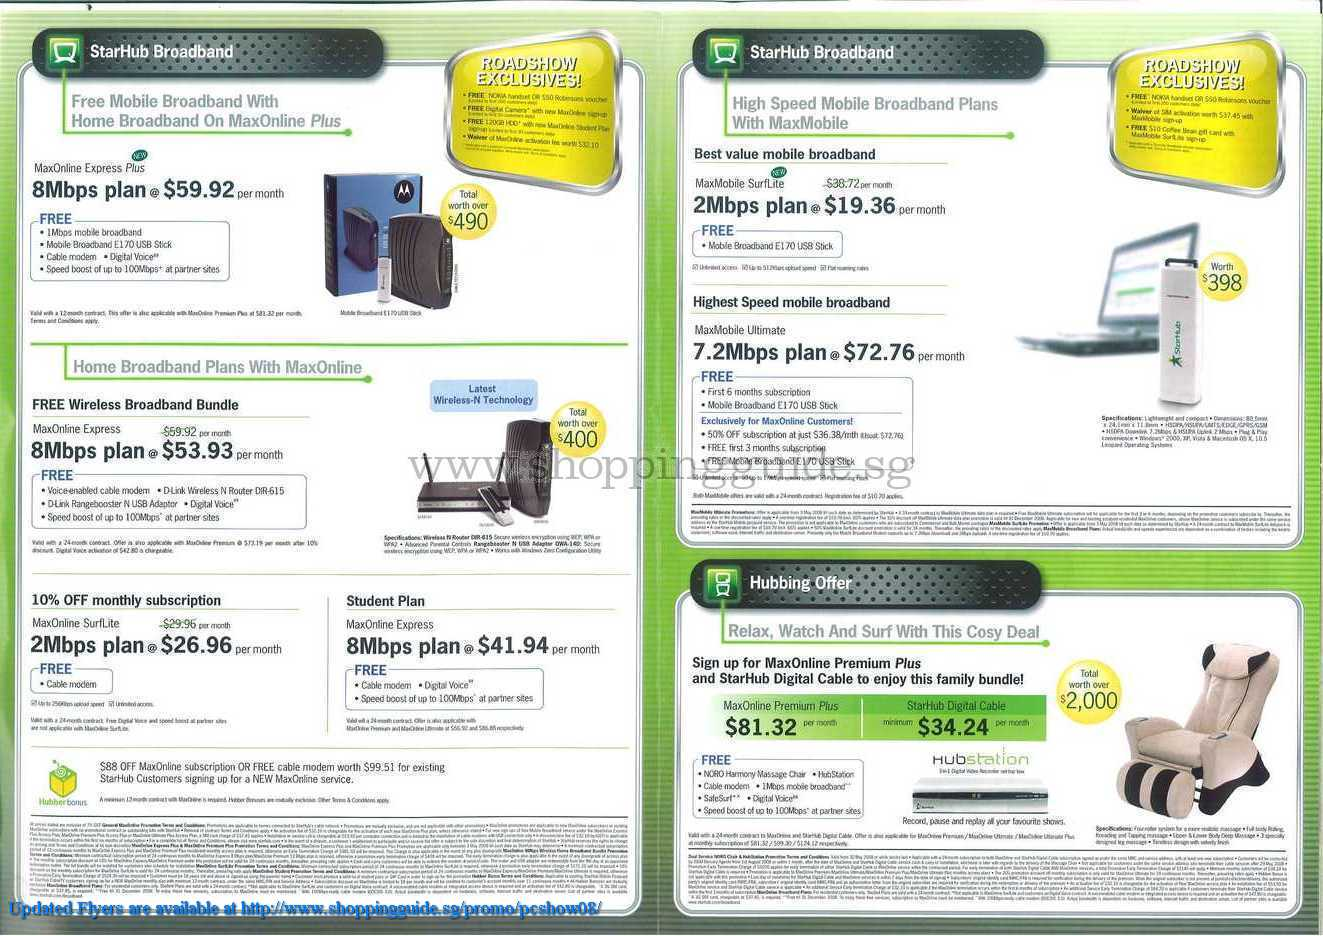 PC Show 2008 price list image brochure of Starhub ShoppingGuide.SG-PcShow08-123